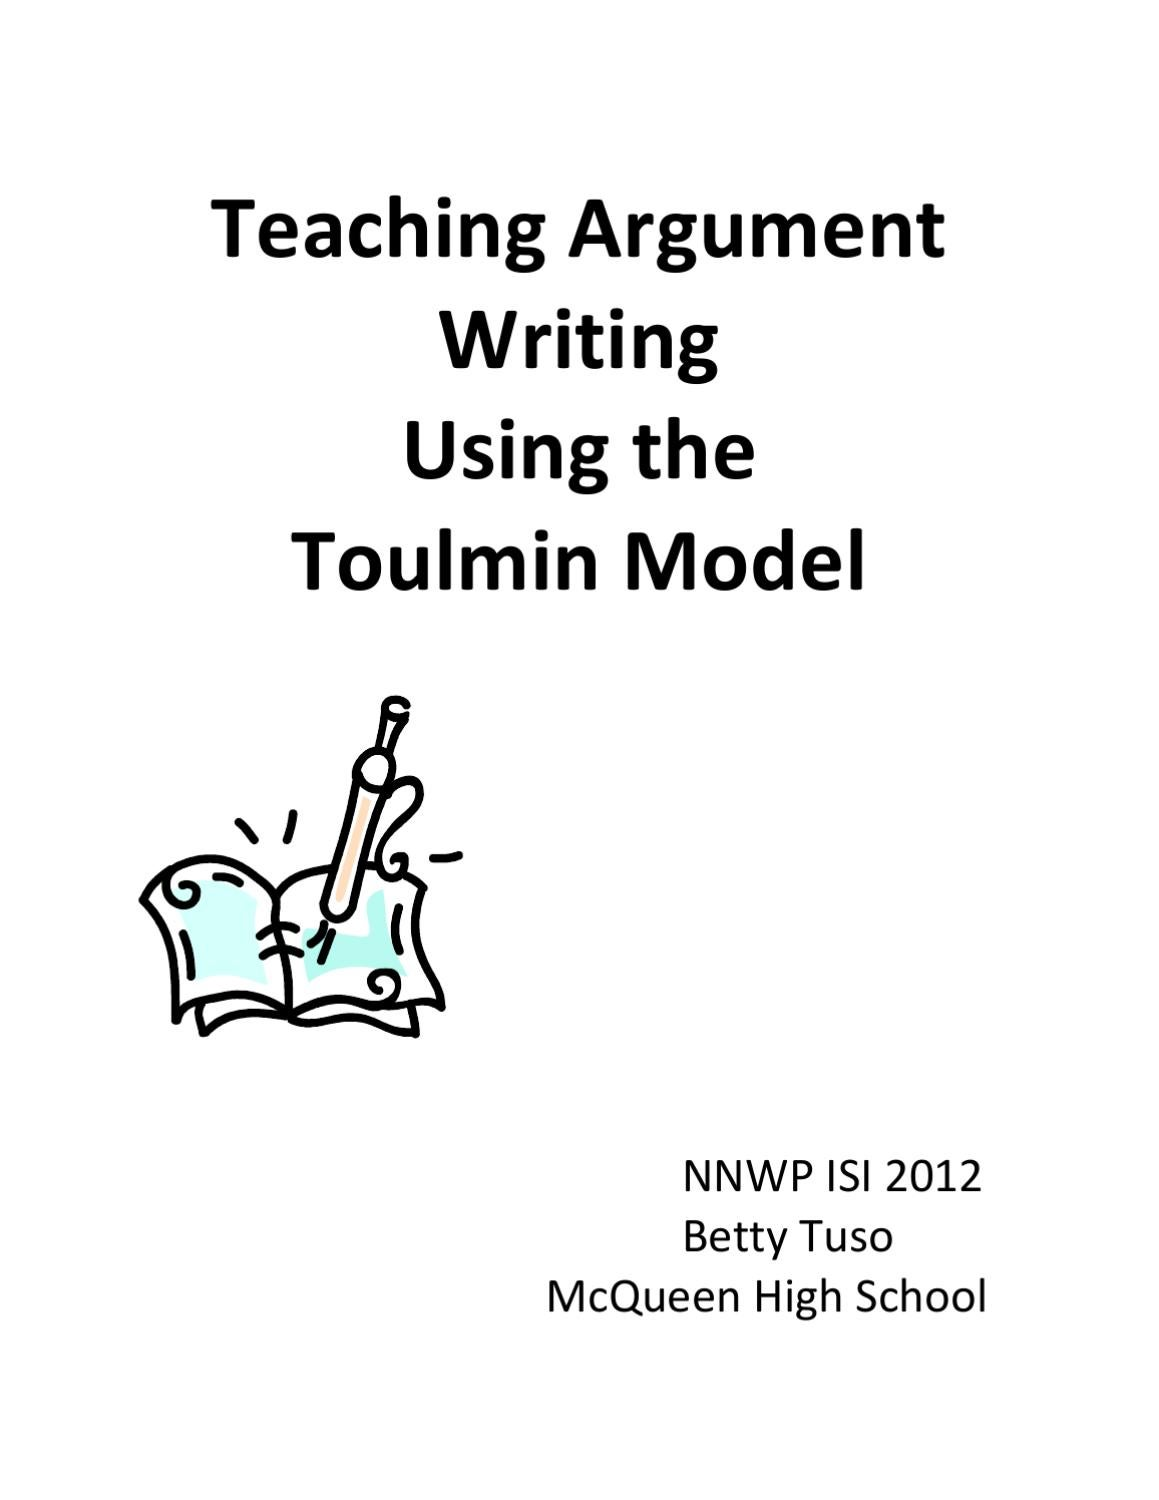 toulmin model essay Toulmin model of argument: the twentieth-century british philosopher stephen toulmin noticed that good, realistic arguments typically will consist of six parts he used these terms to describe the items.